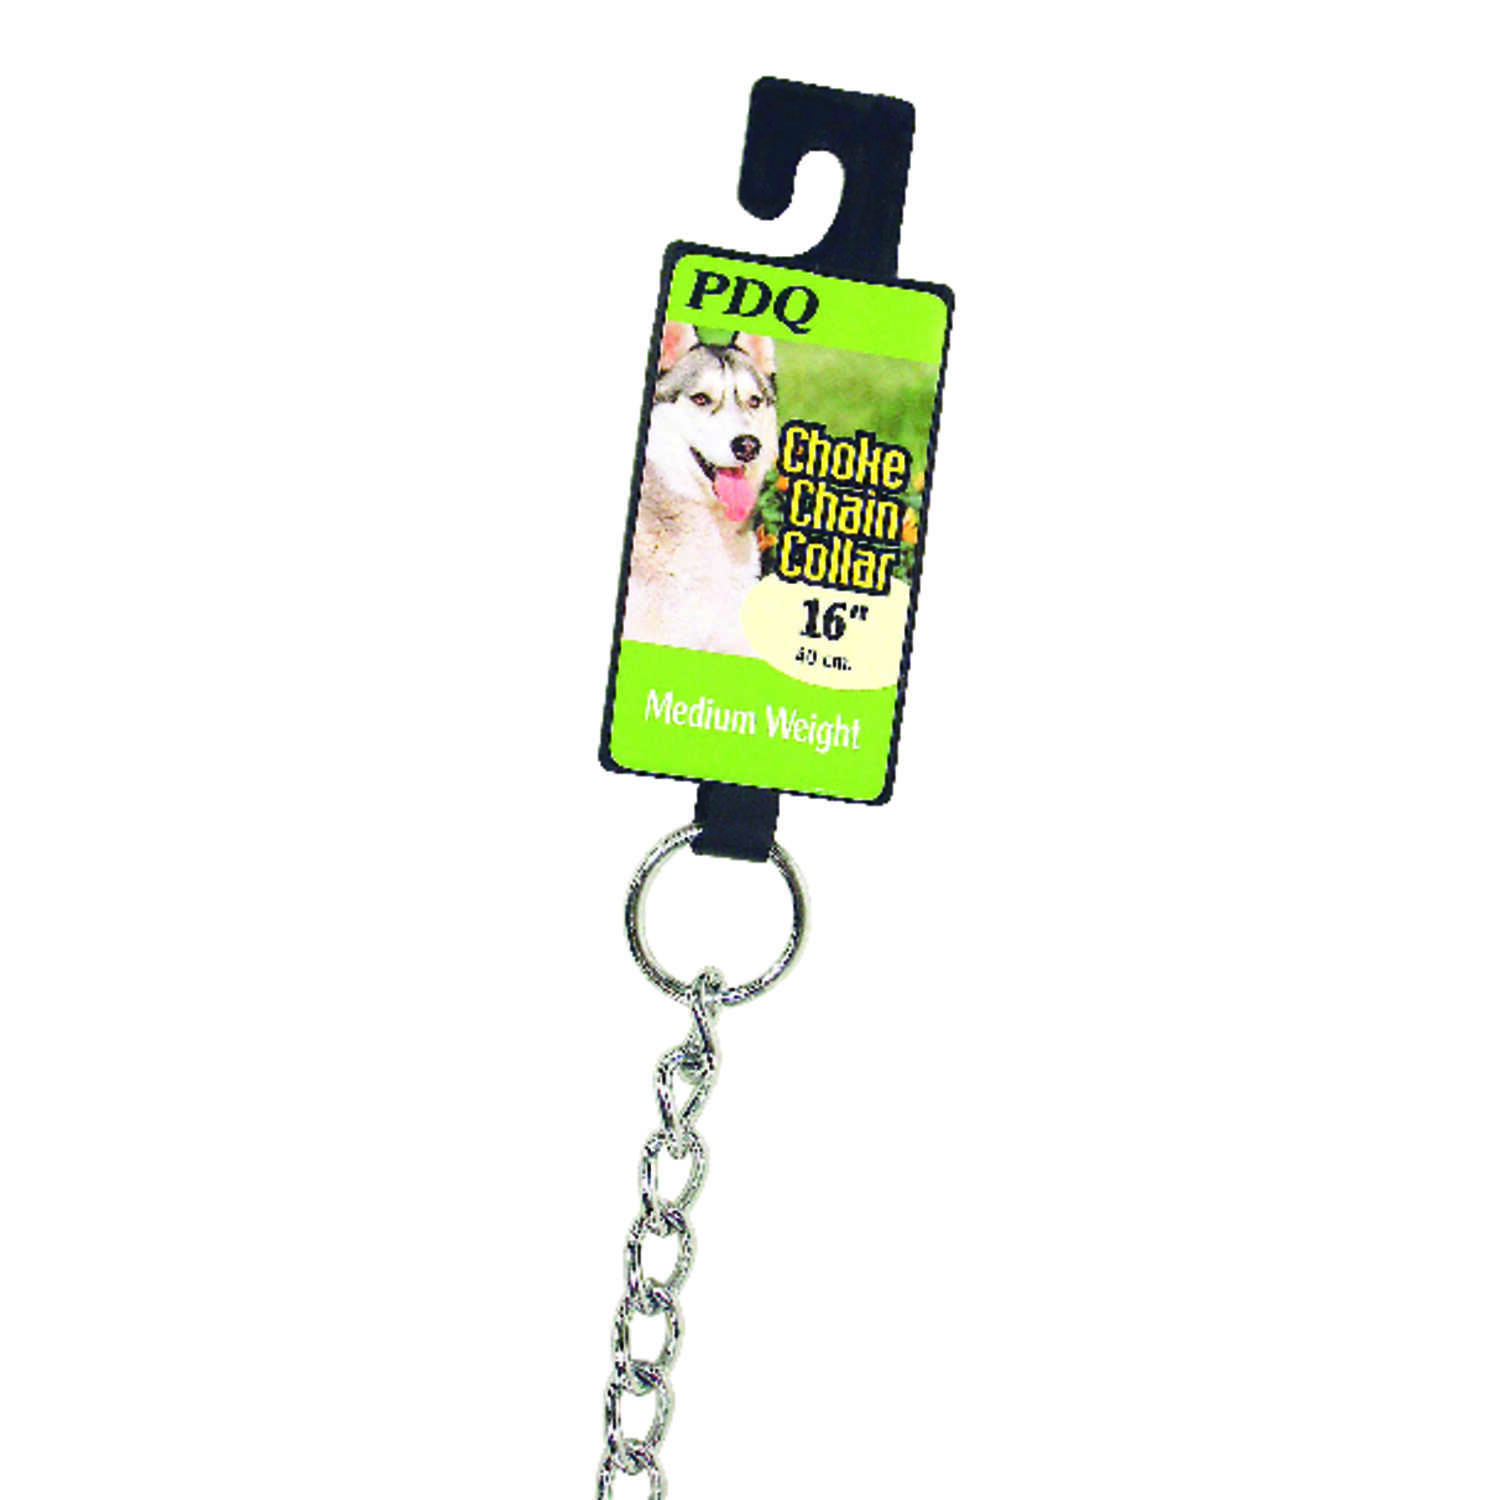 PDQ  Silver  Steel  Dog  Choke Chain Collar  Medium